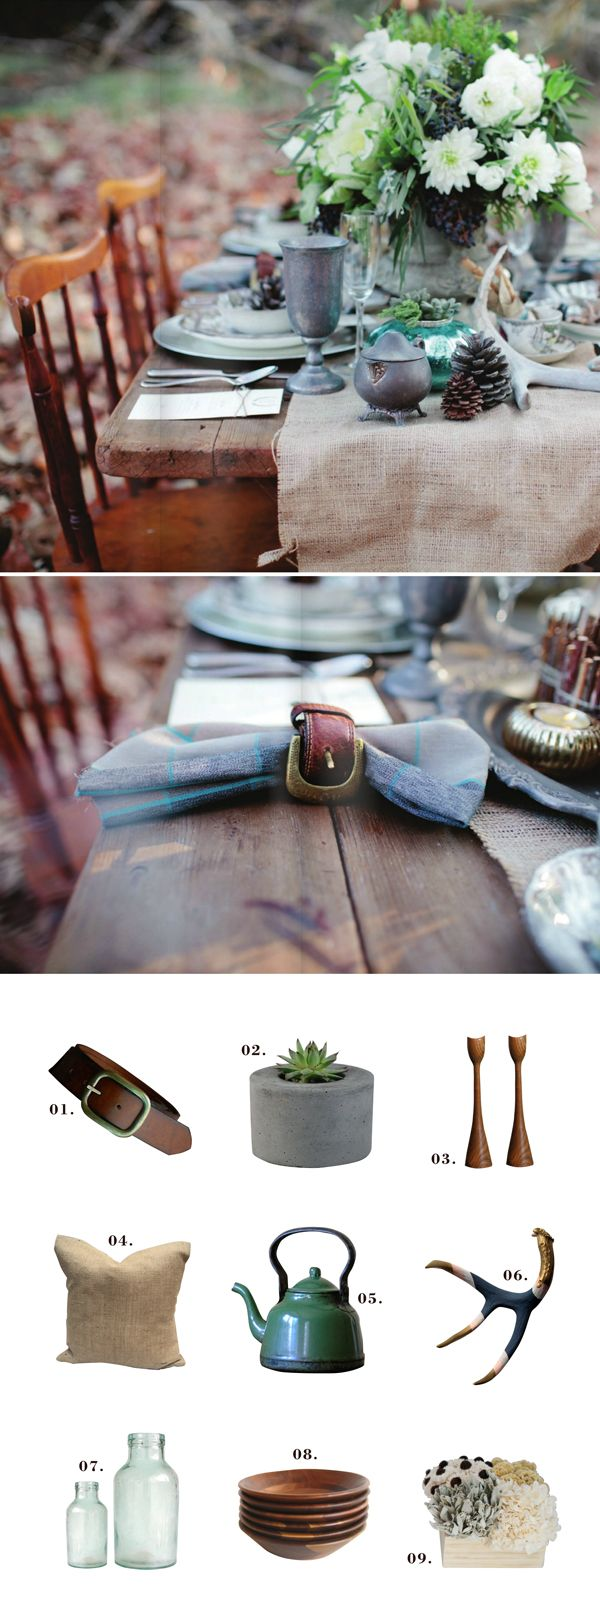 Belt napkin rings! Never been a napkin ring girl, but this entire rustic tabletop is perfect to me.